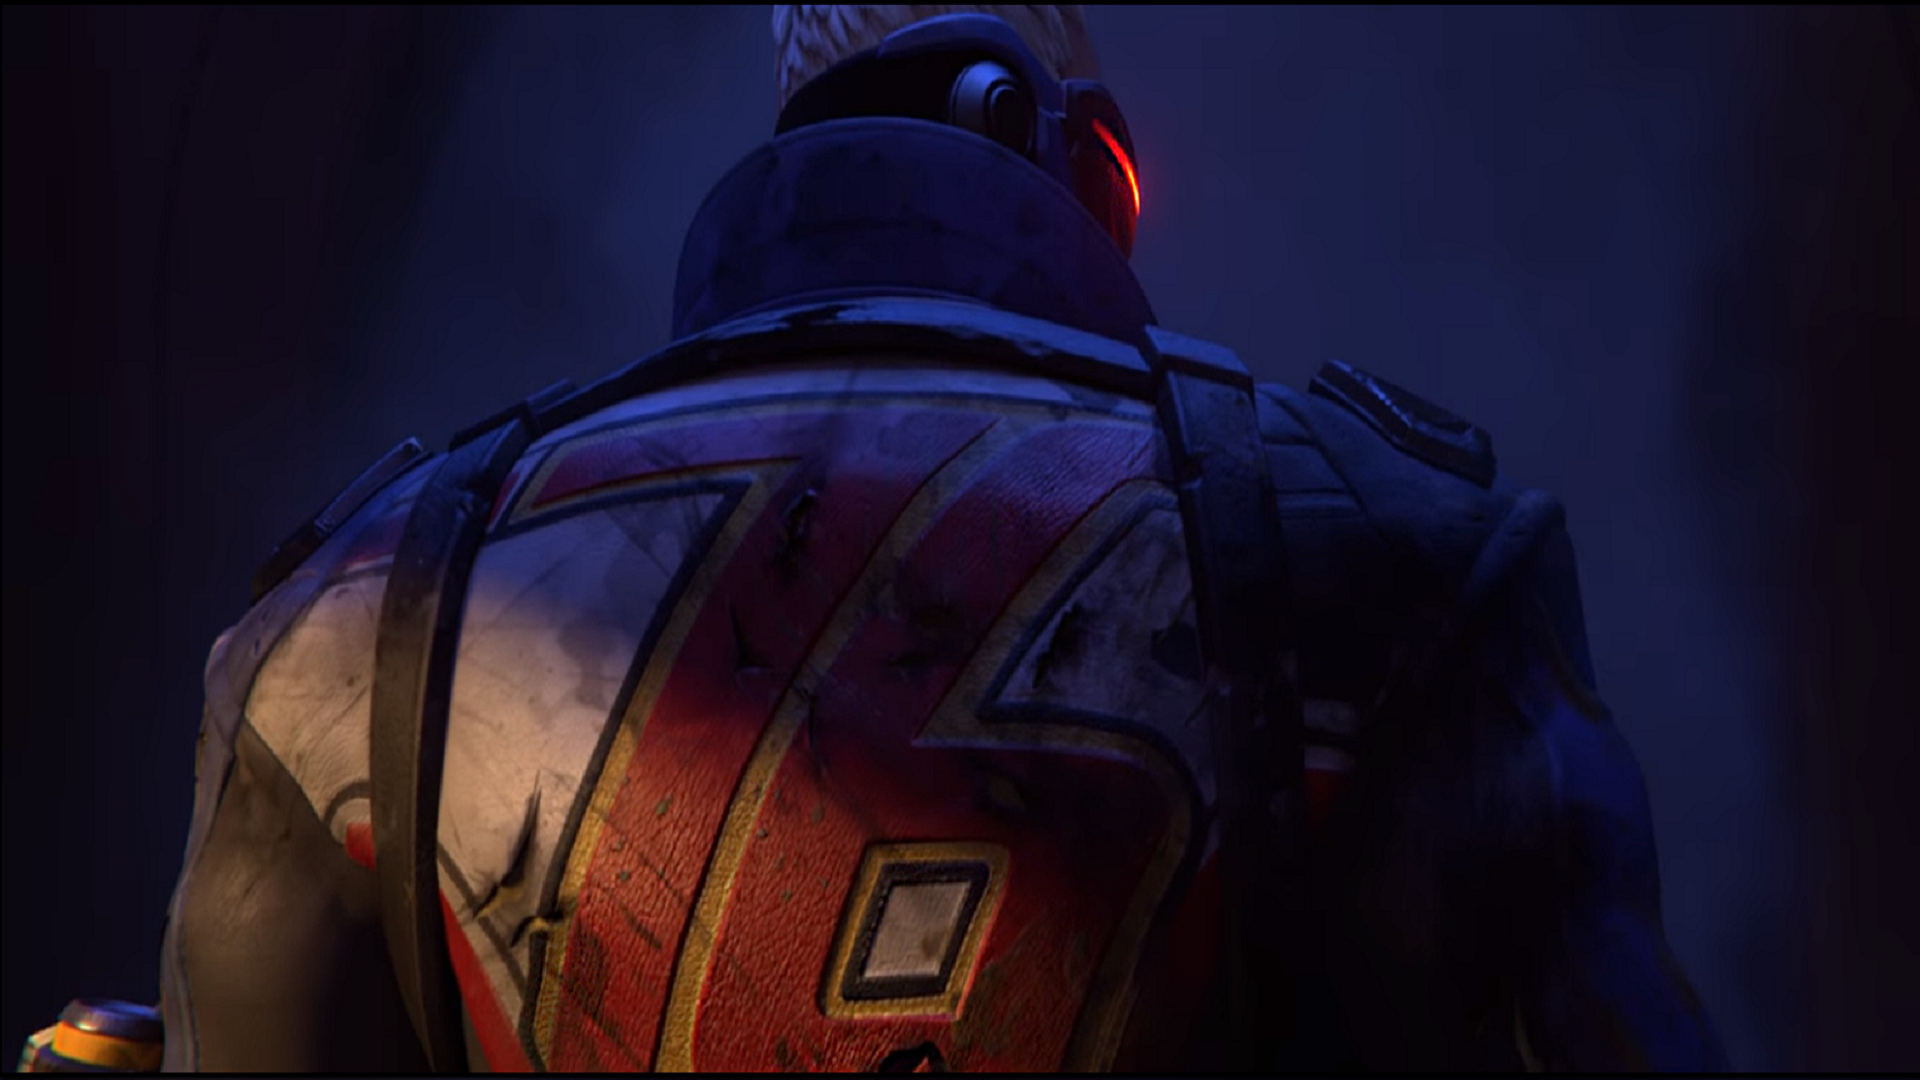 Overwatch Soldier 76 1920X1080 | wallpapers in 2019